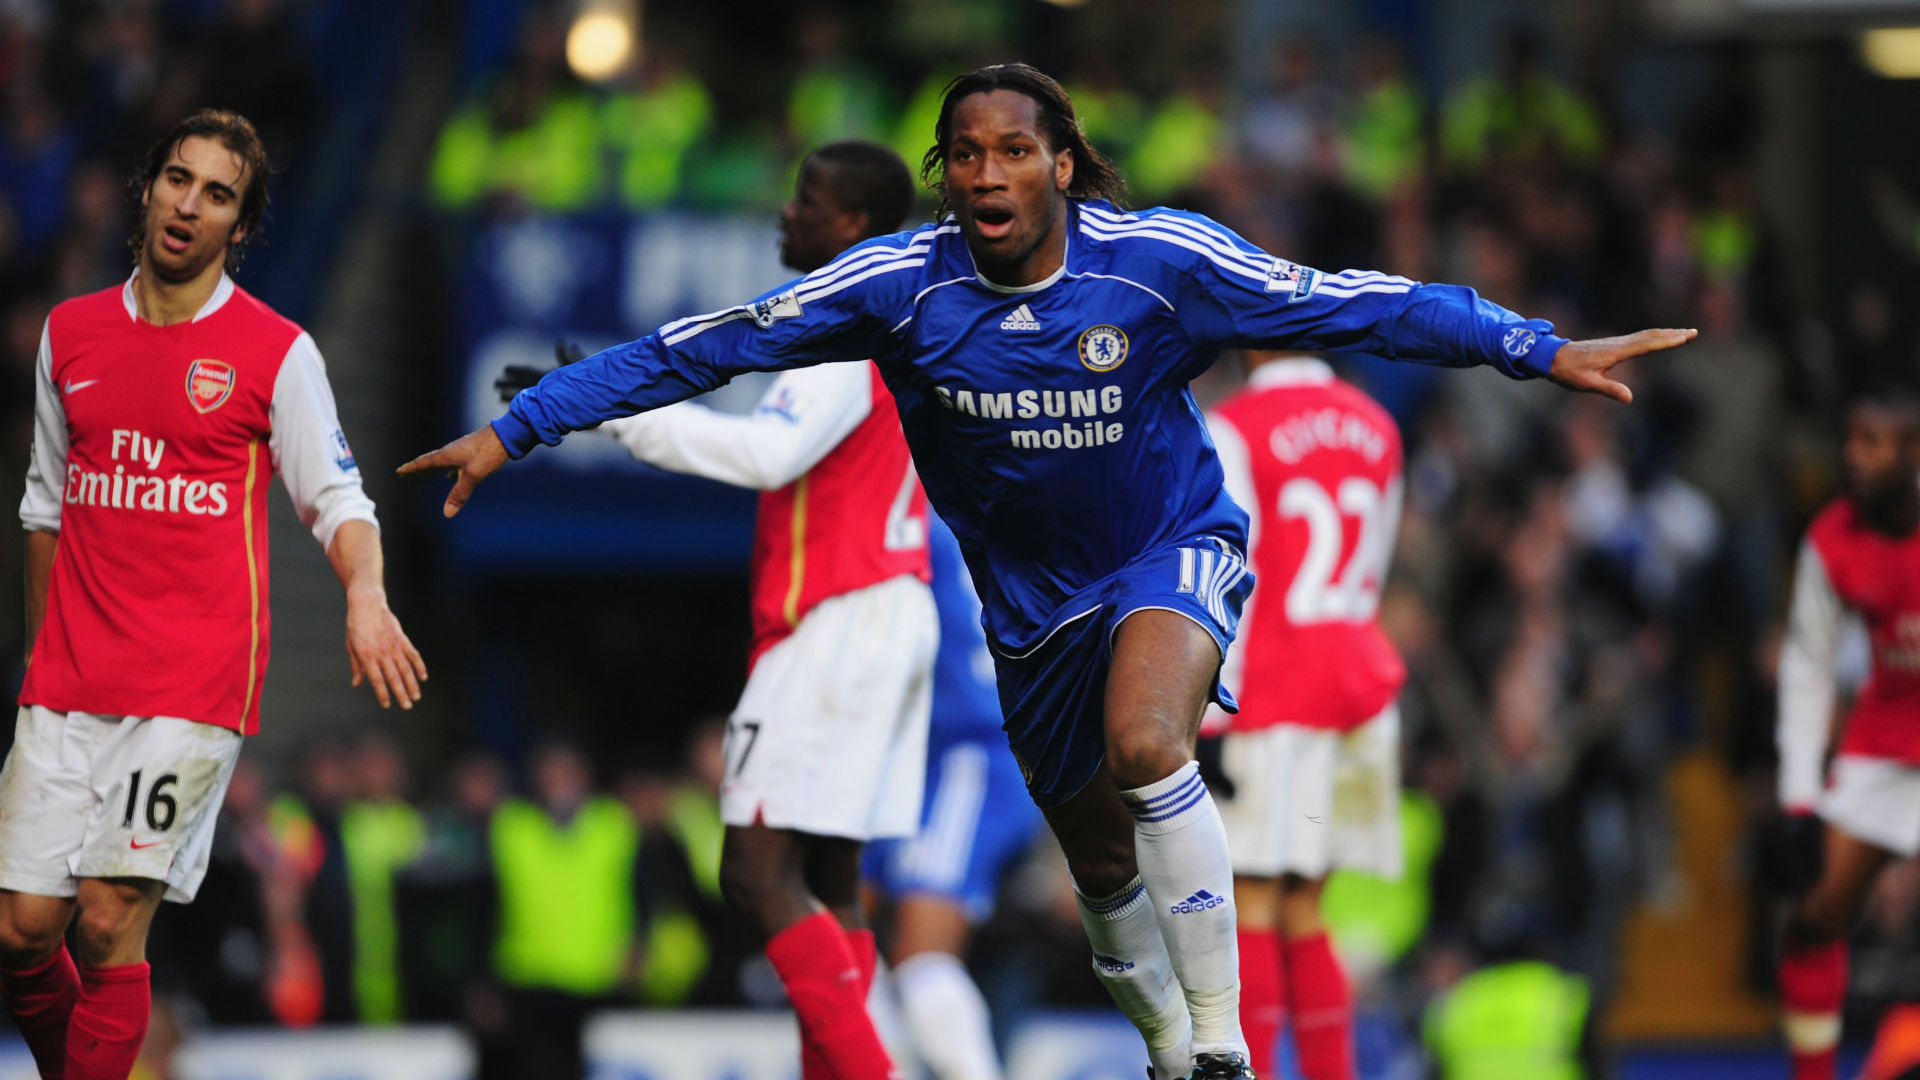 didier-drogba-chelsea-arsenal_wtzbphlax7